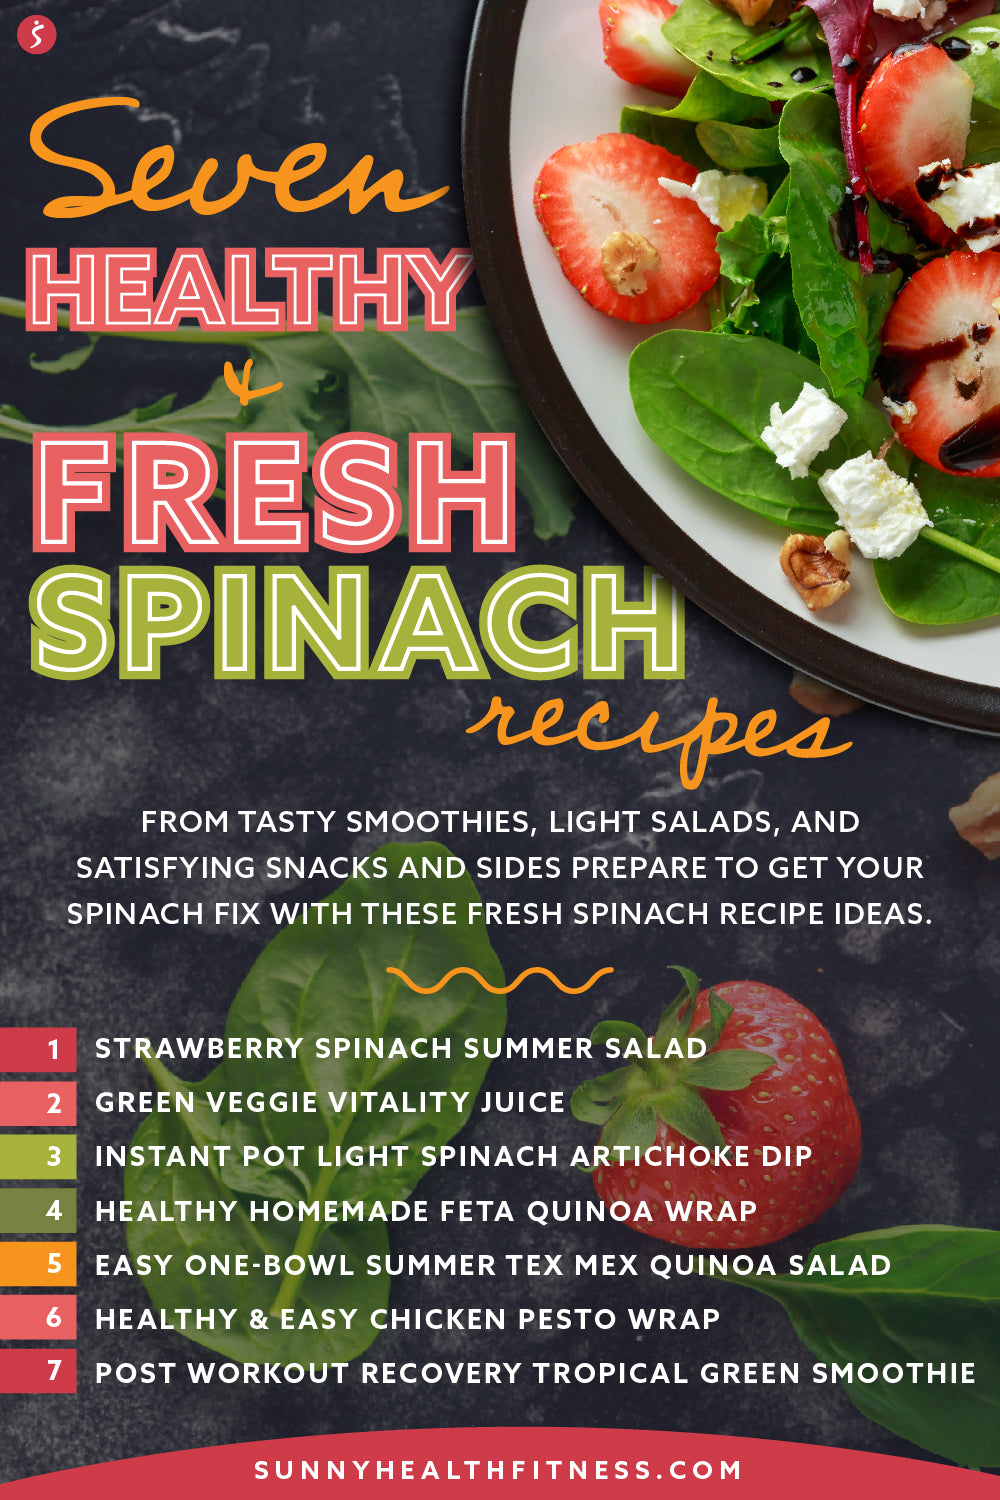 7 Healthy and Fresh Spinach Recipe Ideas at Home